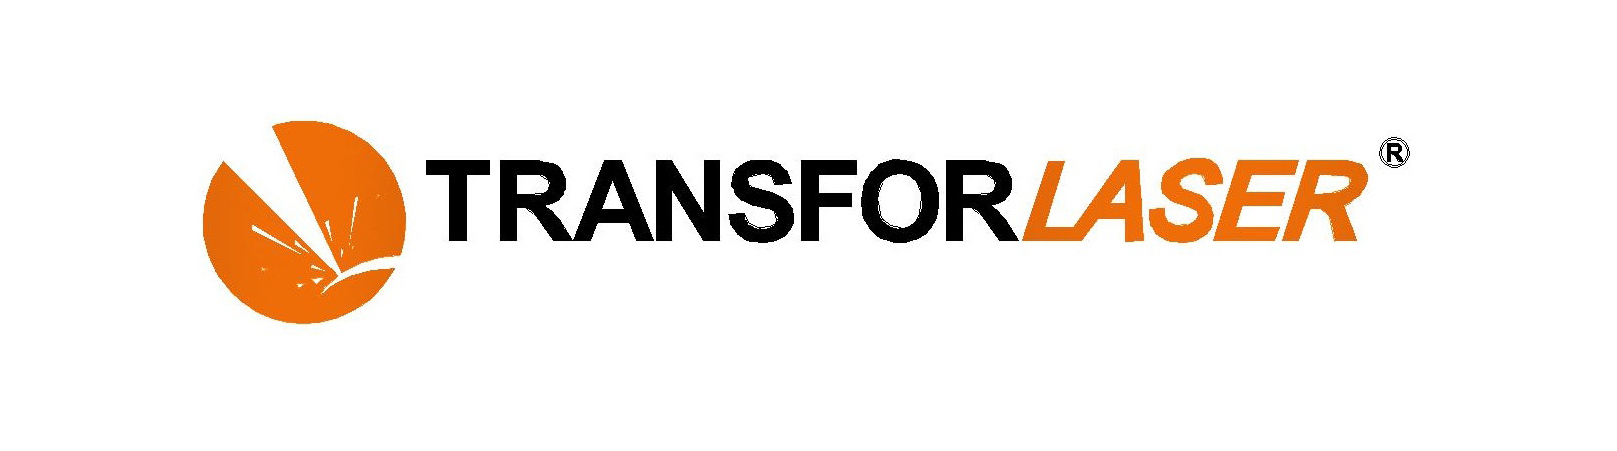 logo transforlaser